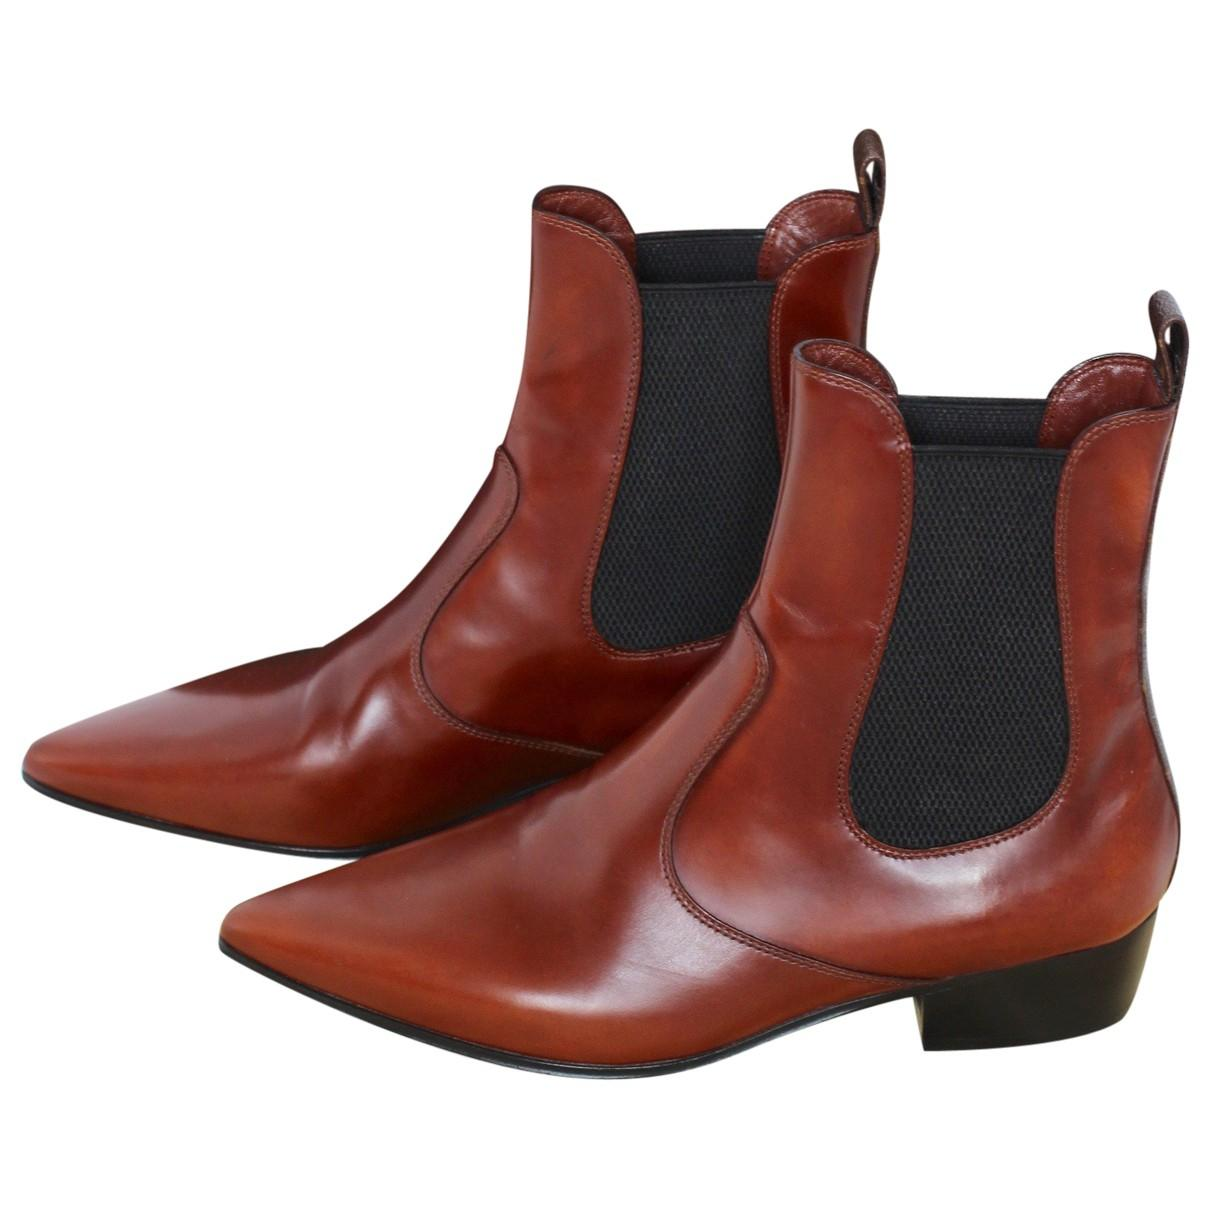 71a75e438b08eb Louis Vuitton Leather Ankle Boots in Brown - Lyst